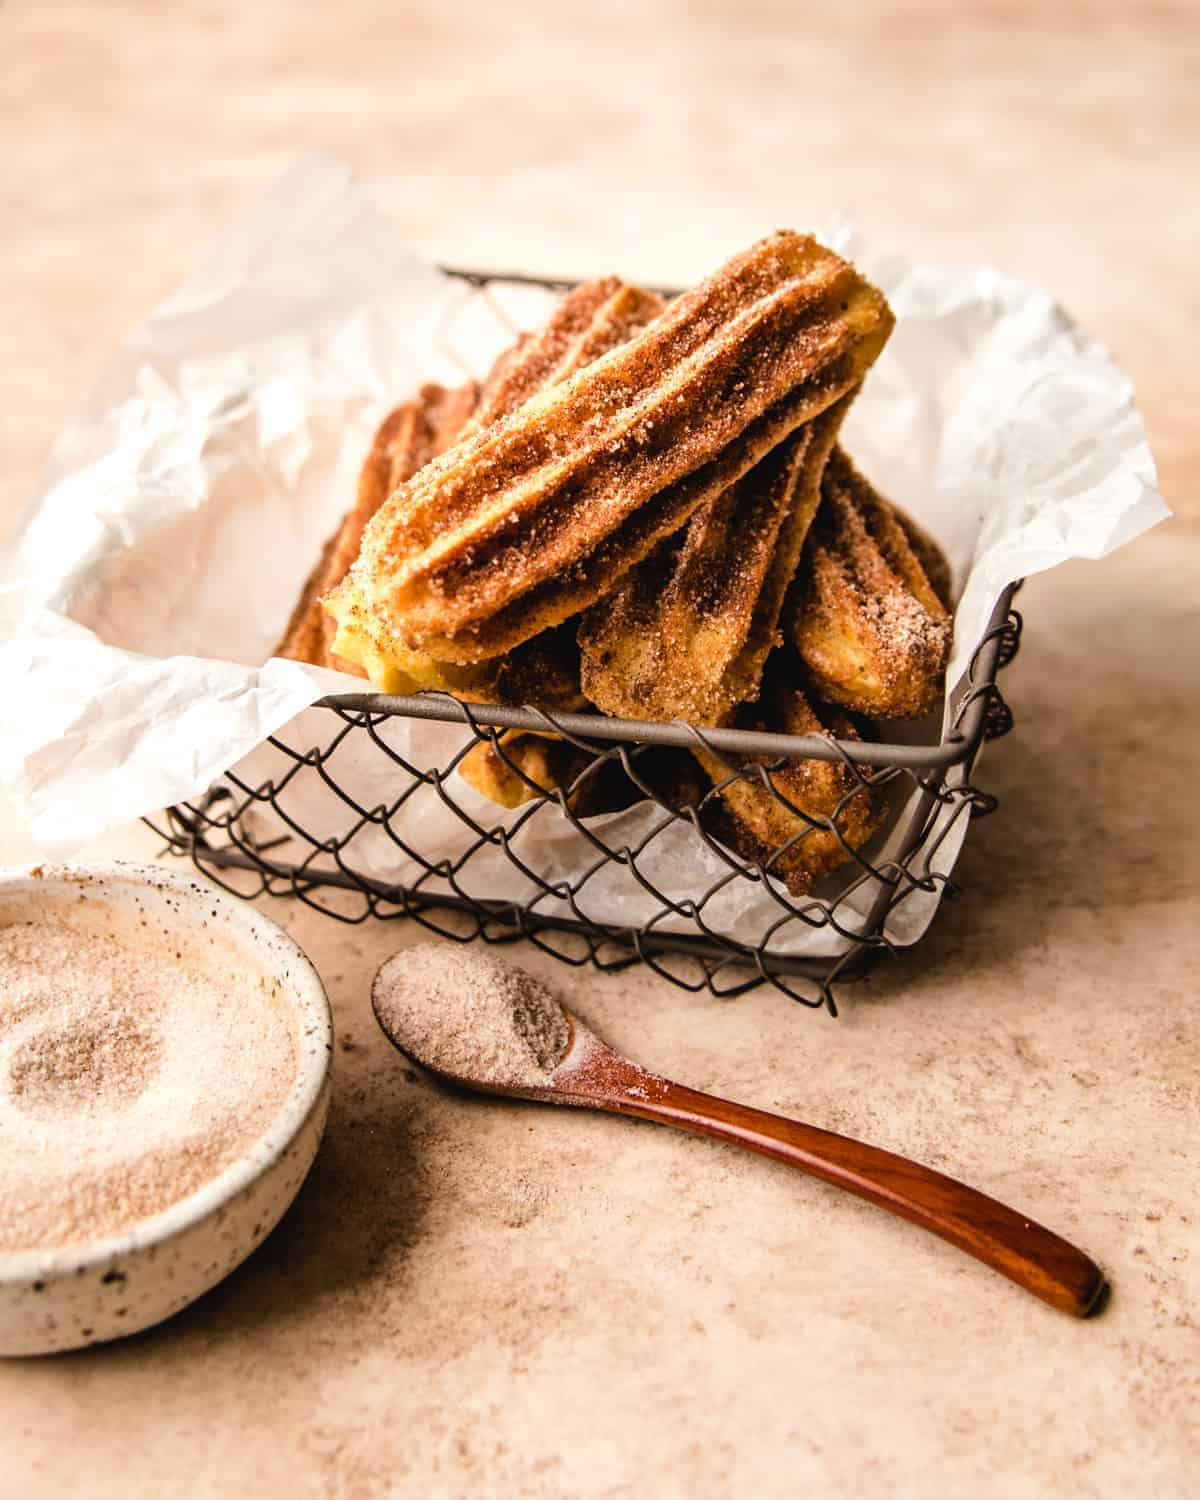 stack of churros in a metal mesh basket with paper lining with cinnamon sugar in a bowl and spoon in front